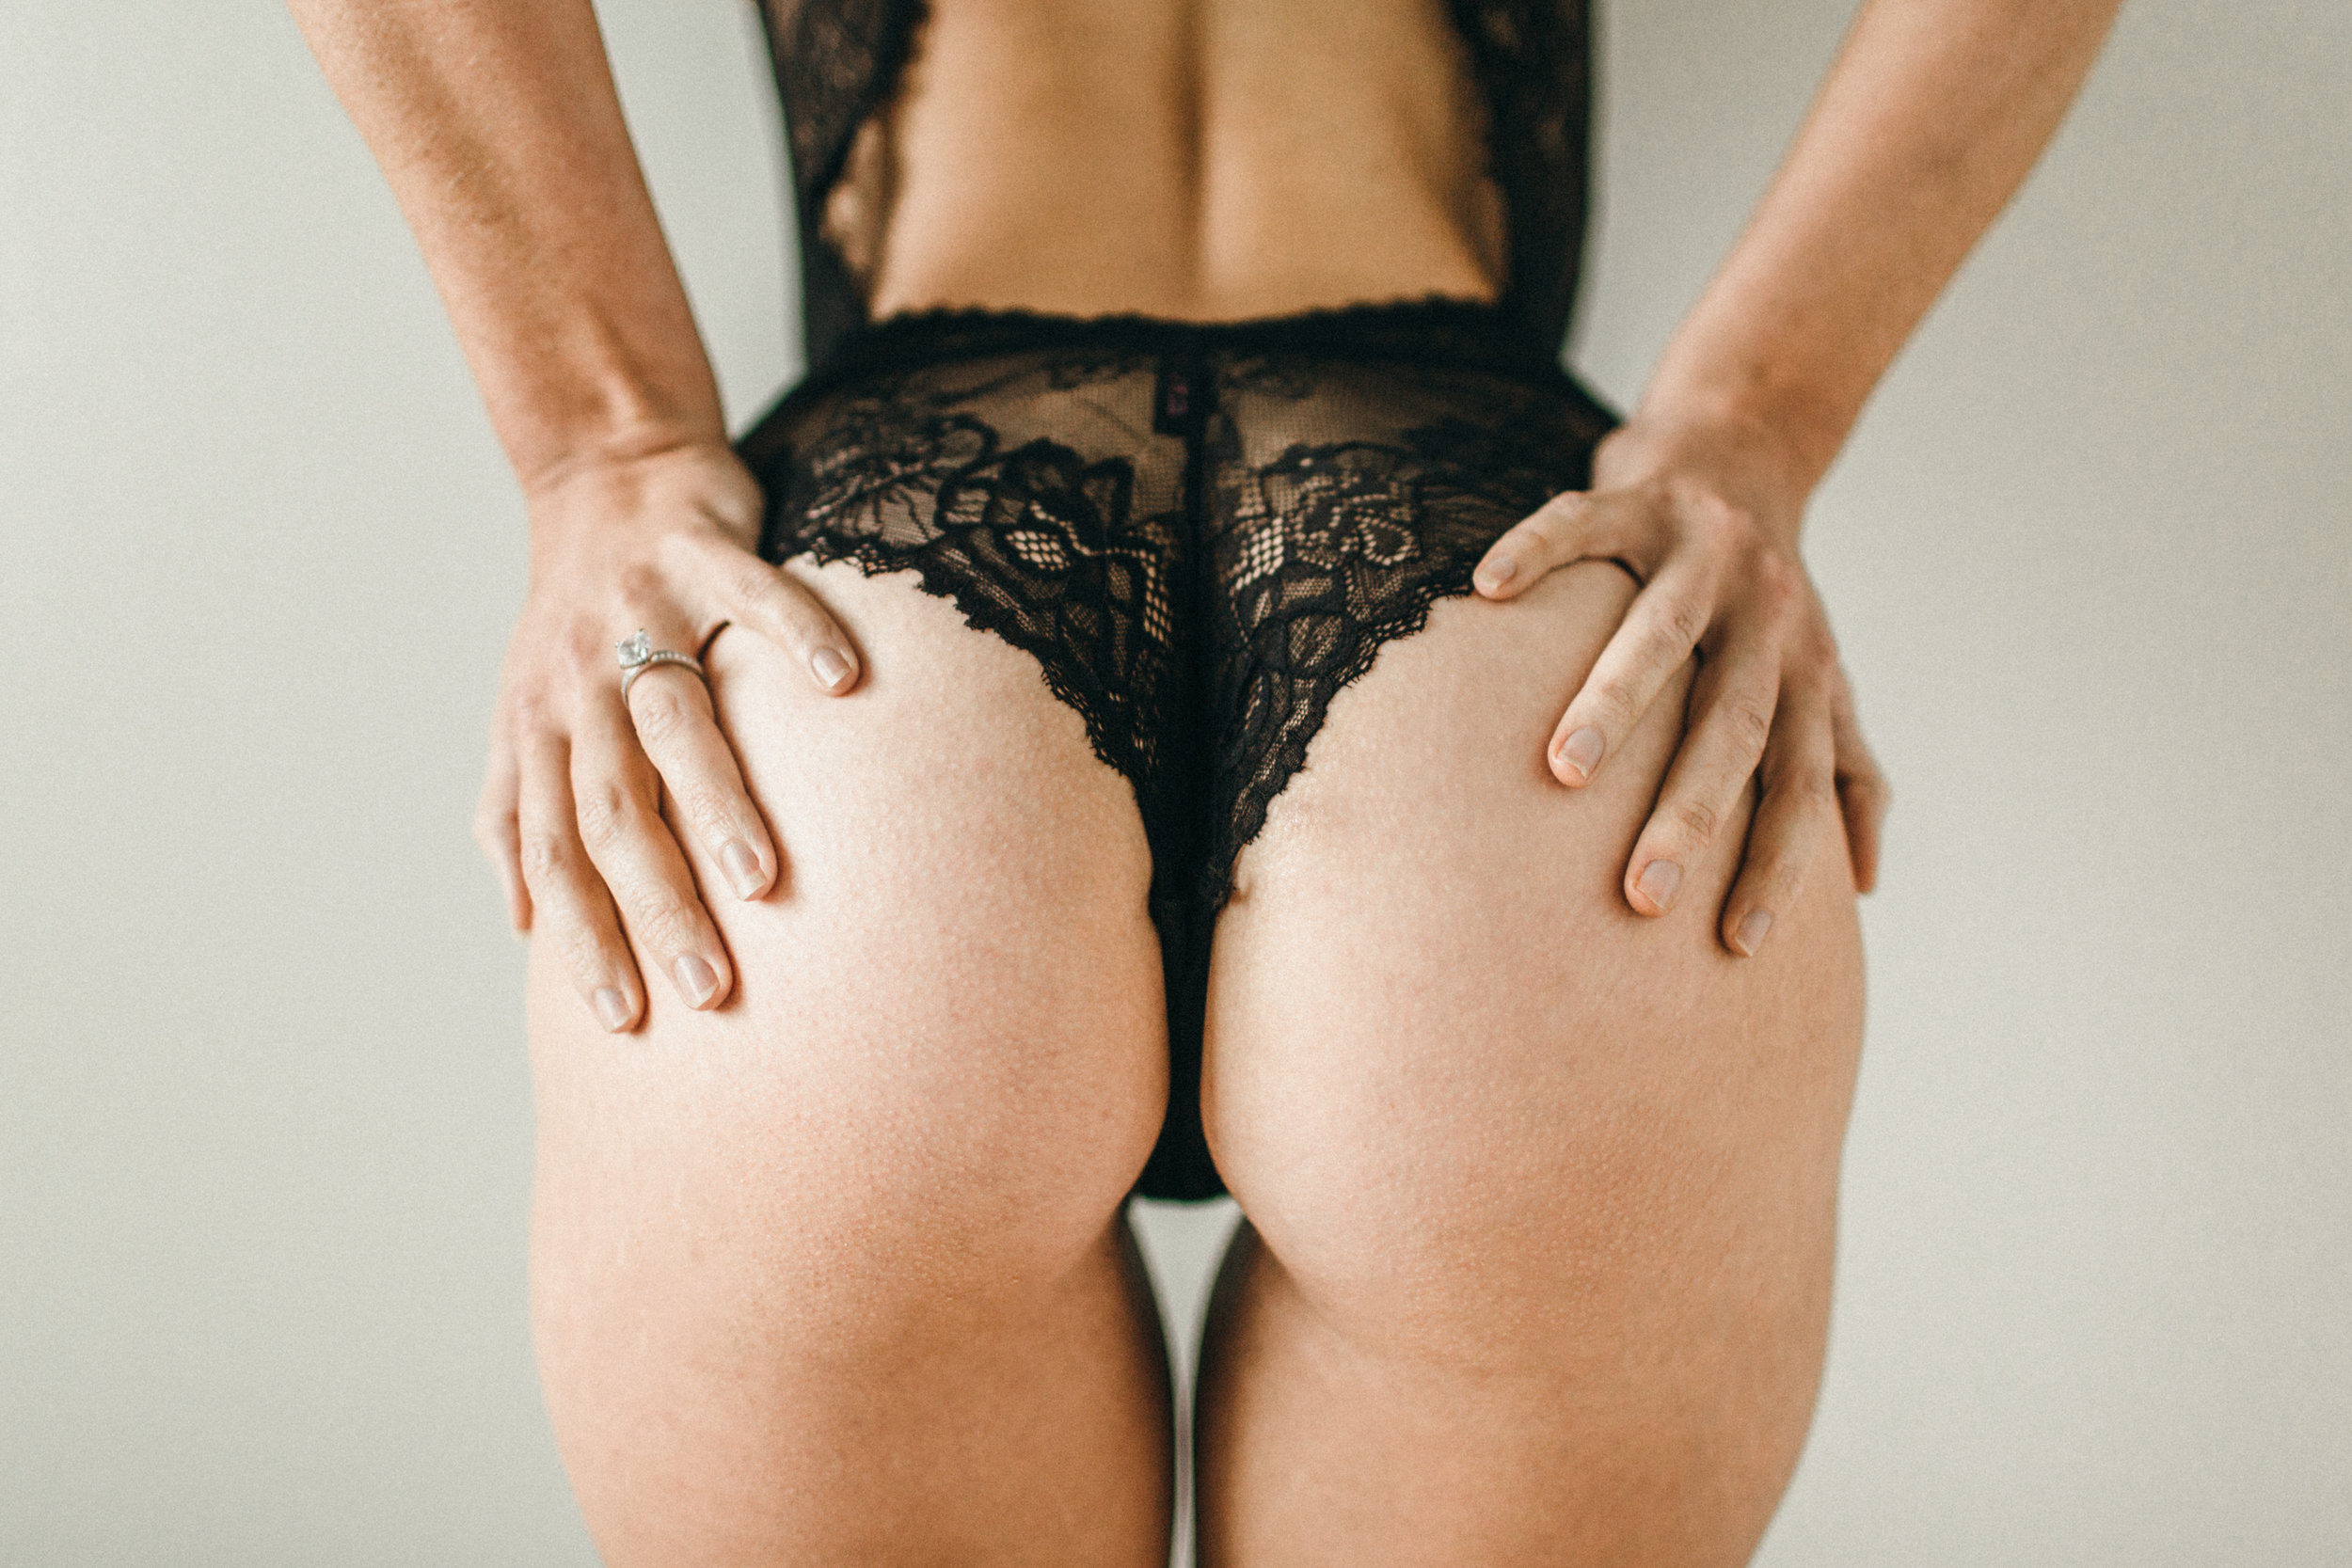 curvy woman posing with her booty in black lingerie